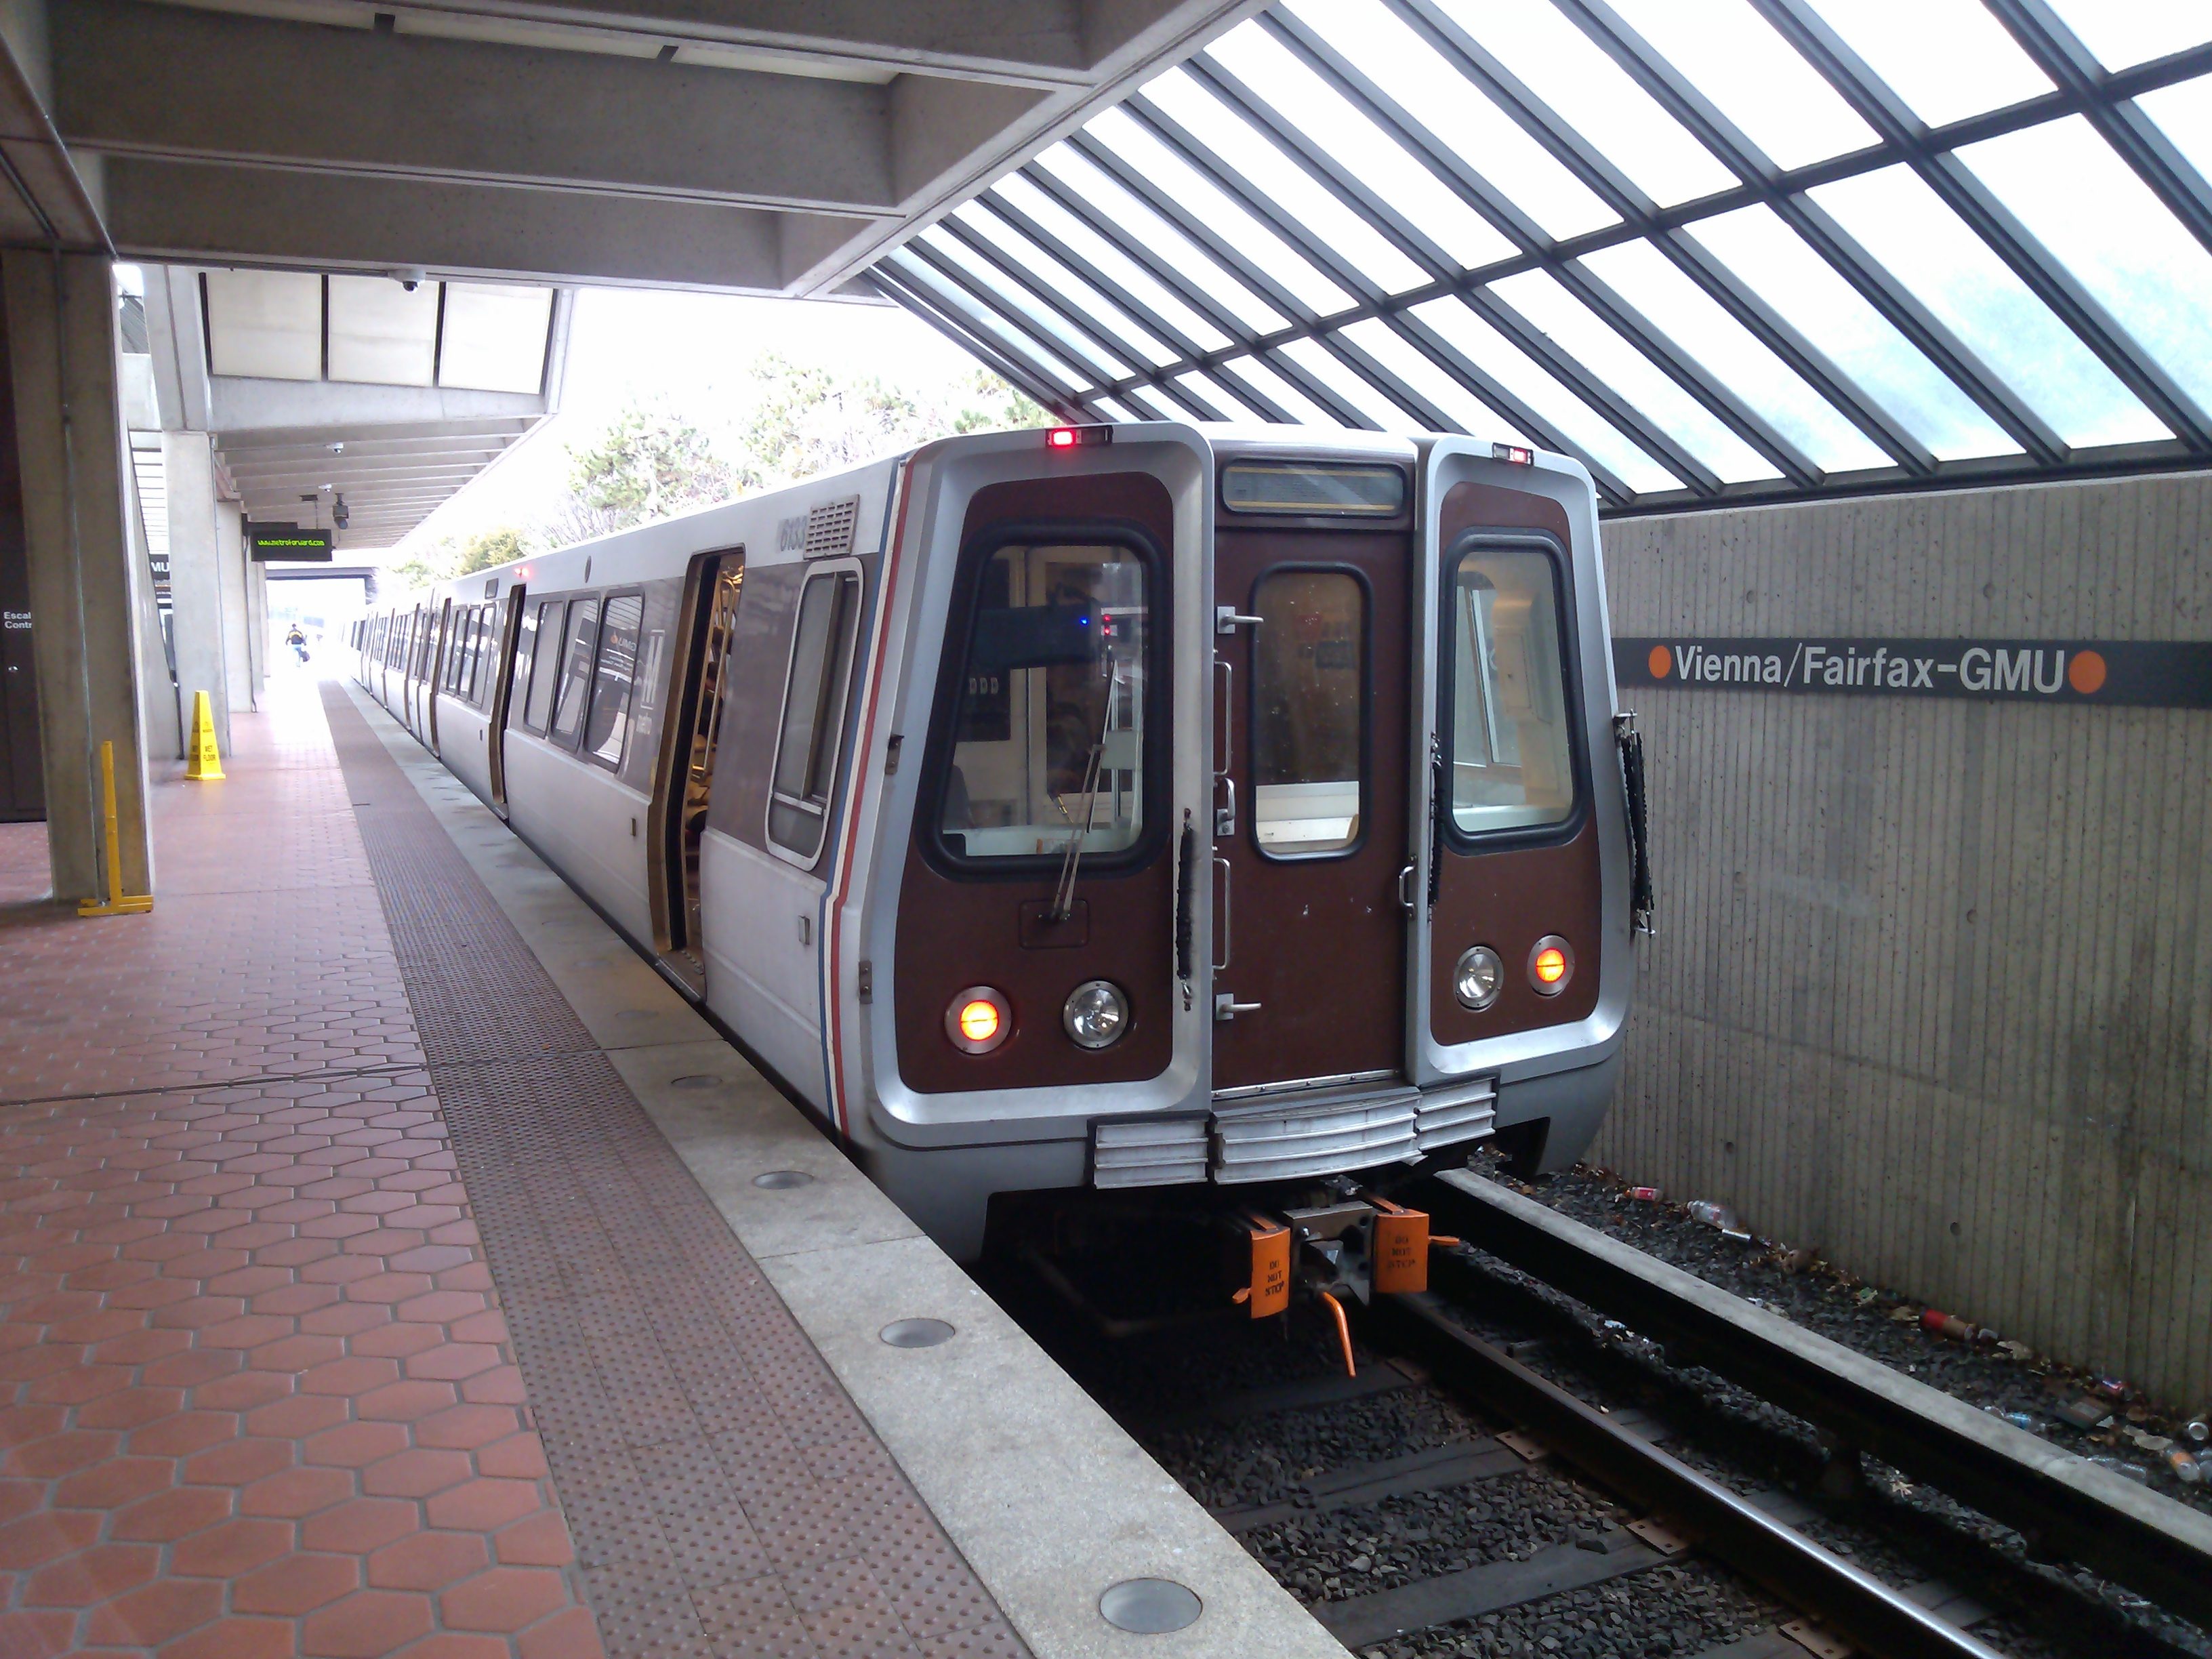 The metro comes in frequent intervals, especially during the morning and evening, the times when people are going to or returning from work